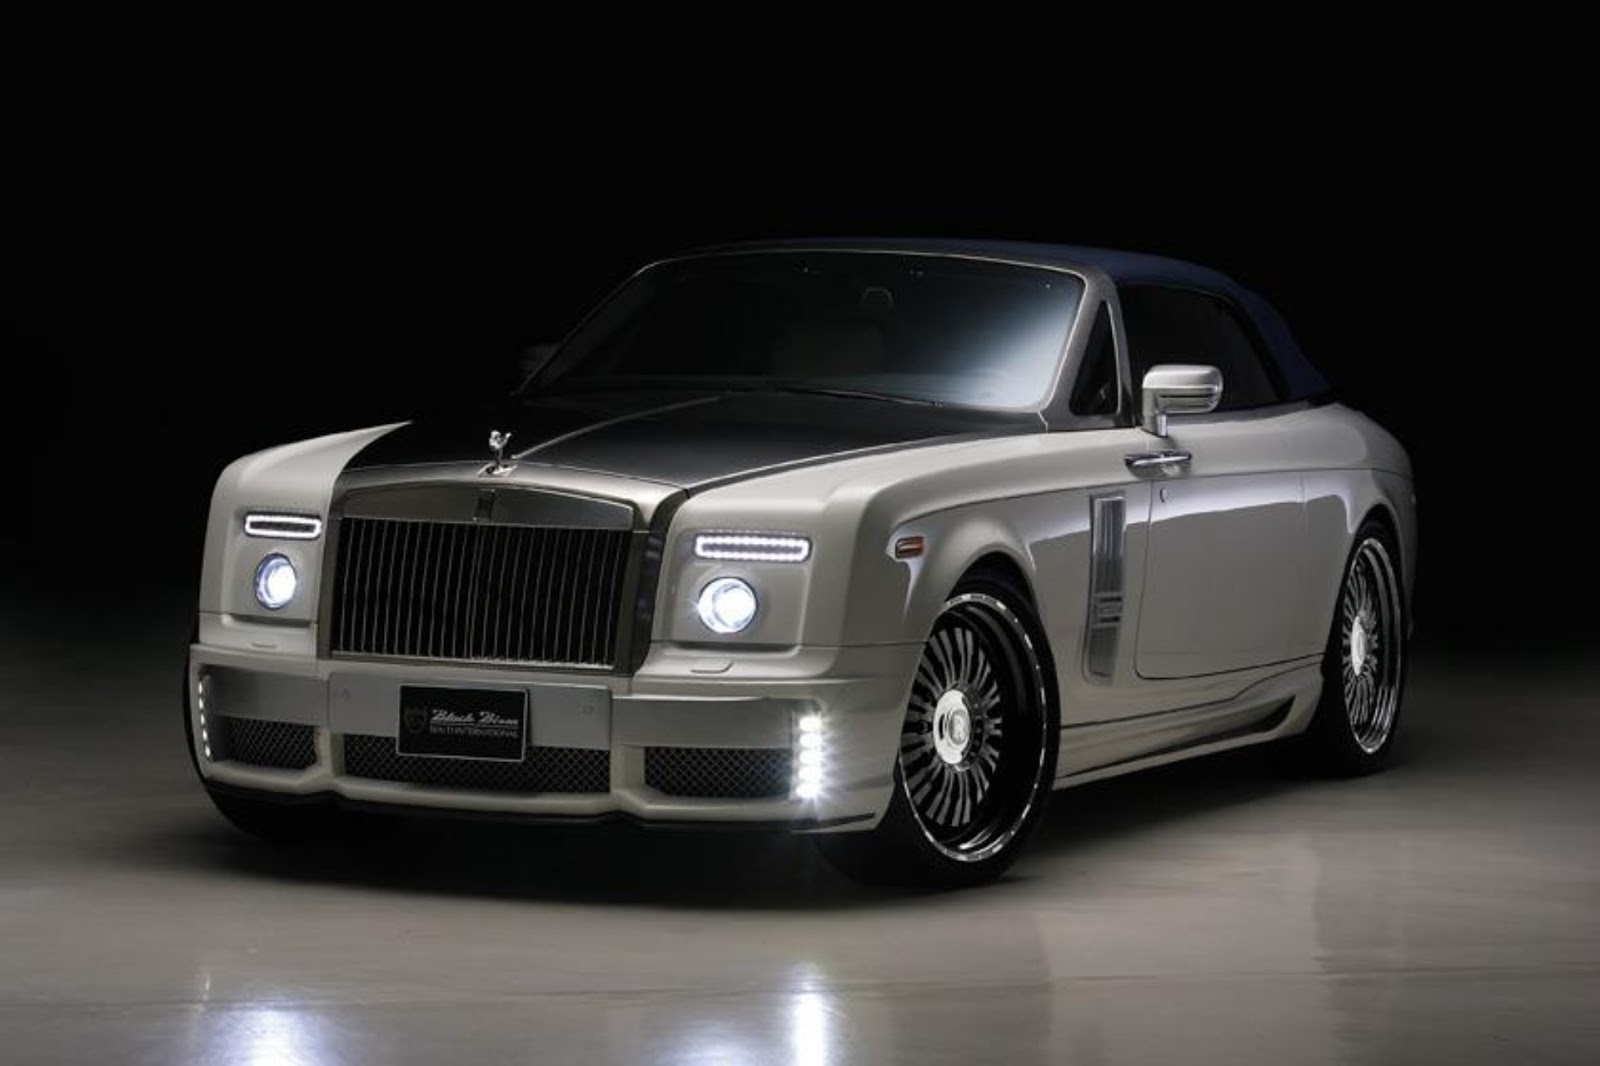 sports cars rolls royce phantom drophead coupe wallpaper. Black Bedroom Furniture Sets. Home Design Ideas